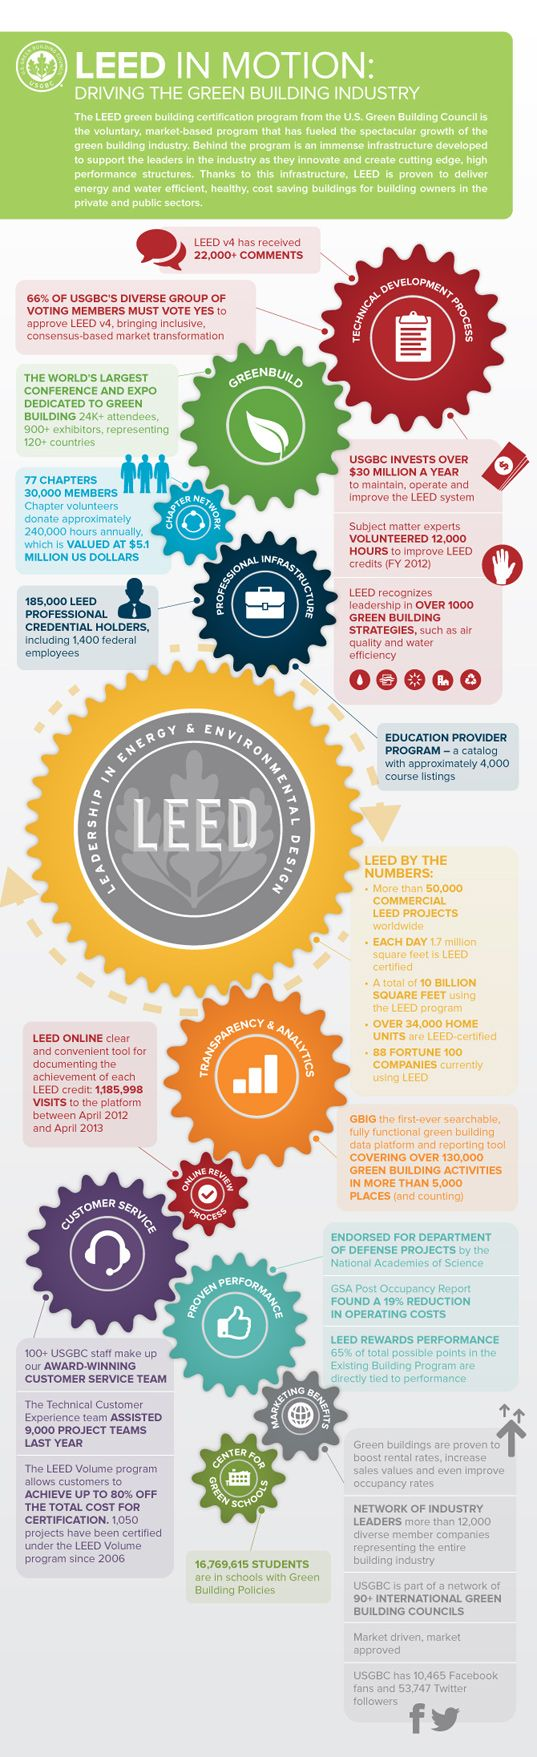 Leed In Motion Infographic Shows How Leed Certification Has Driven